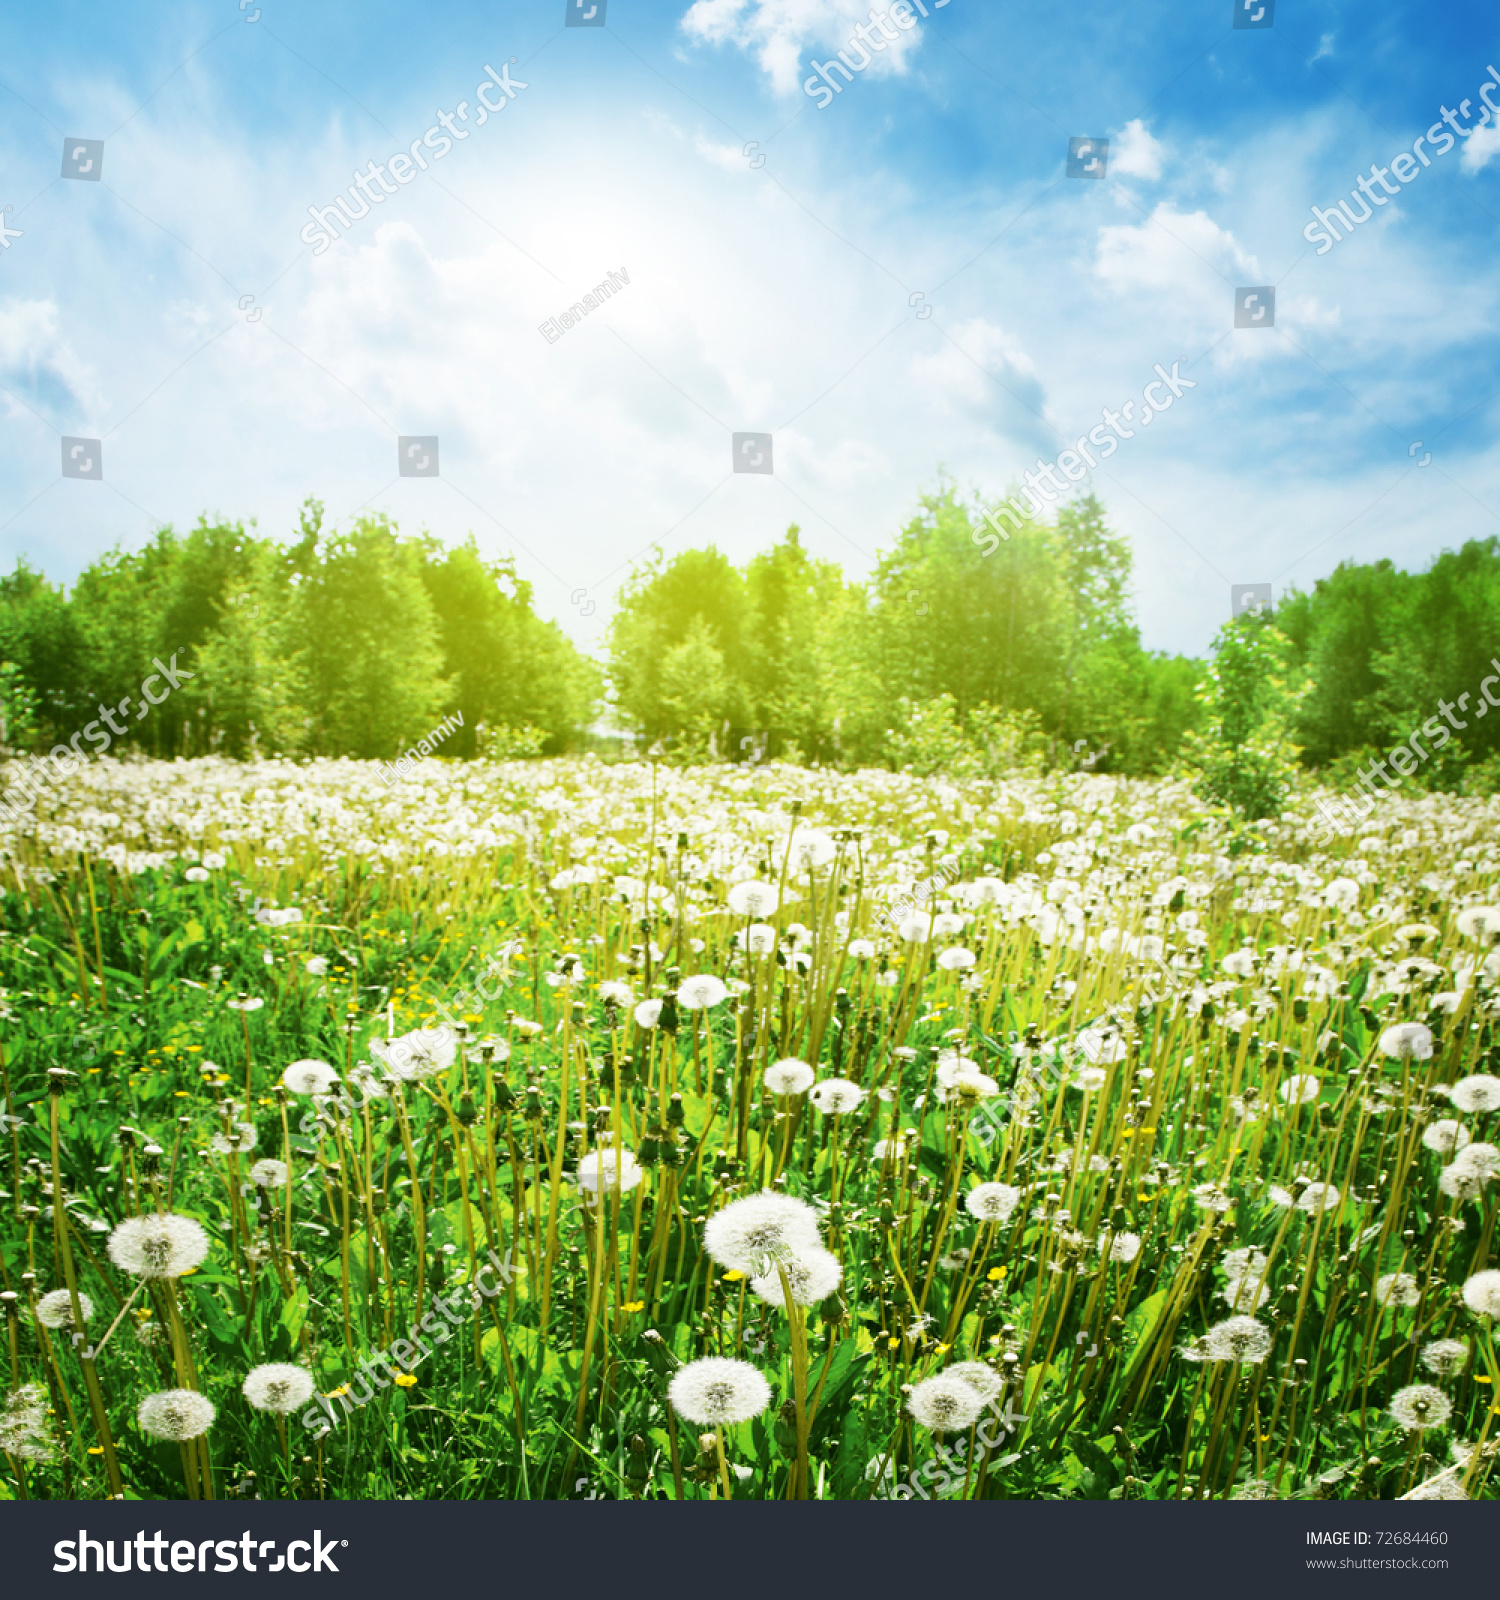 Field Of Dandelions,Blue Sky And Sun. Stock Photo 72684460